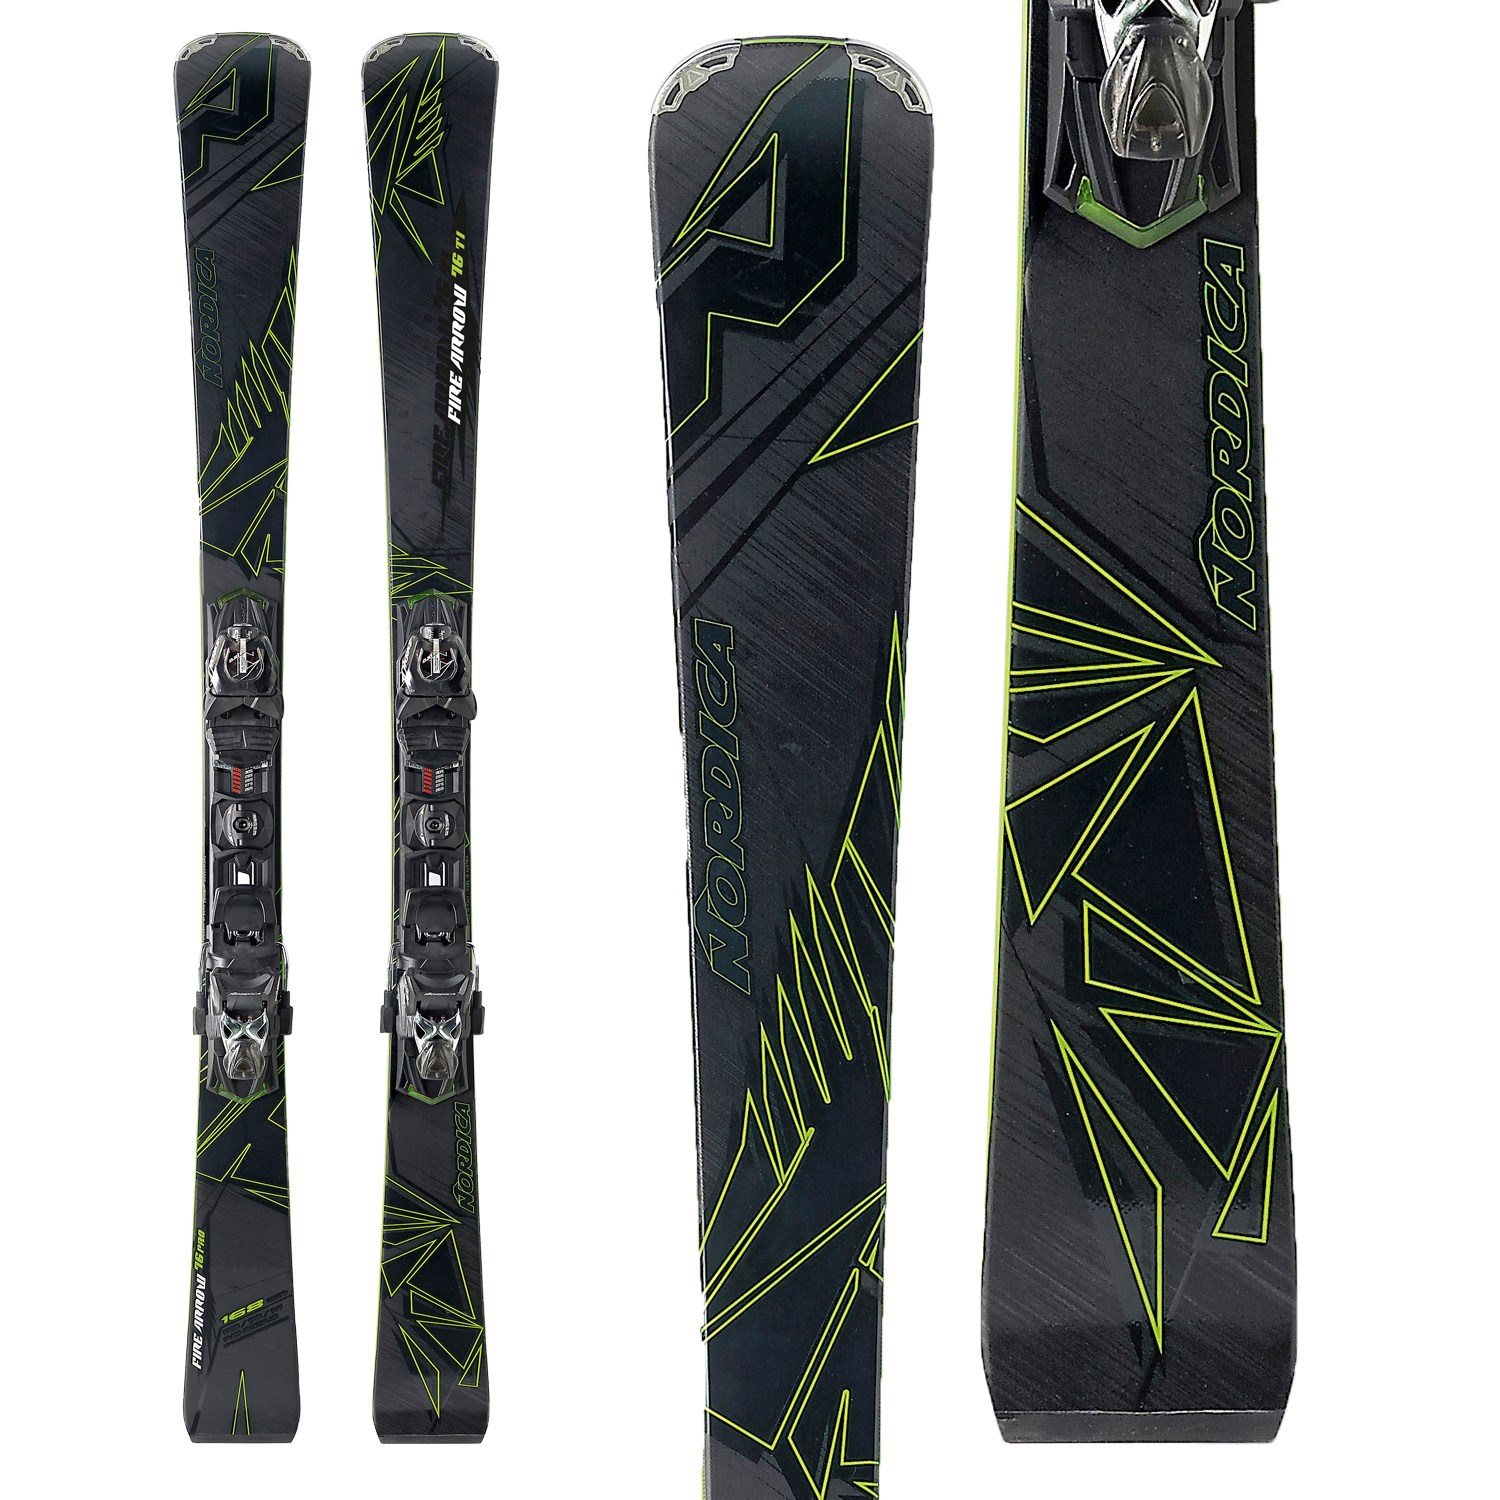 Nordica Firearrow 76 Ti Skis + N PRO P.R. EVO Bindings